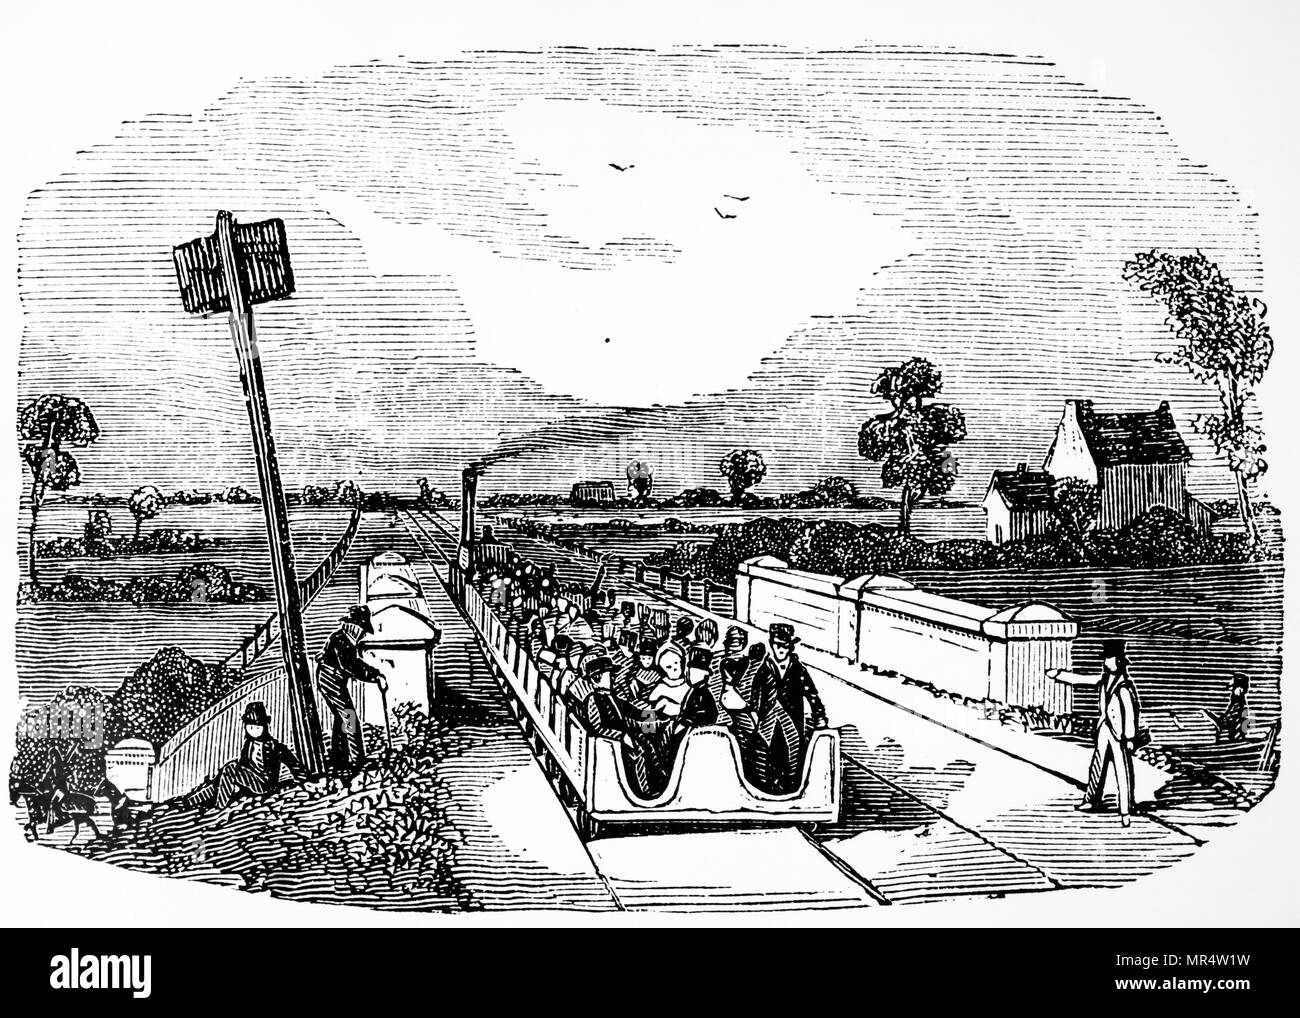 Engraving depicting open carriages running on a broad gauge track. Dated 19th century - Stock Image